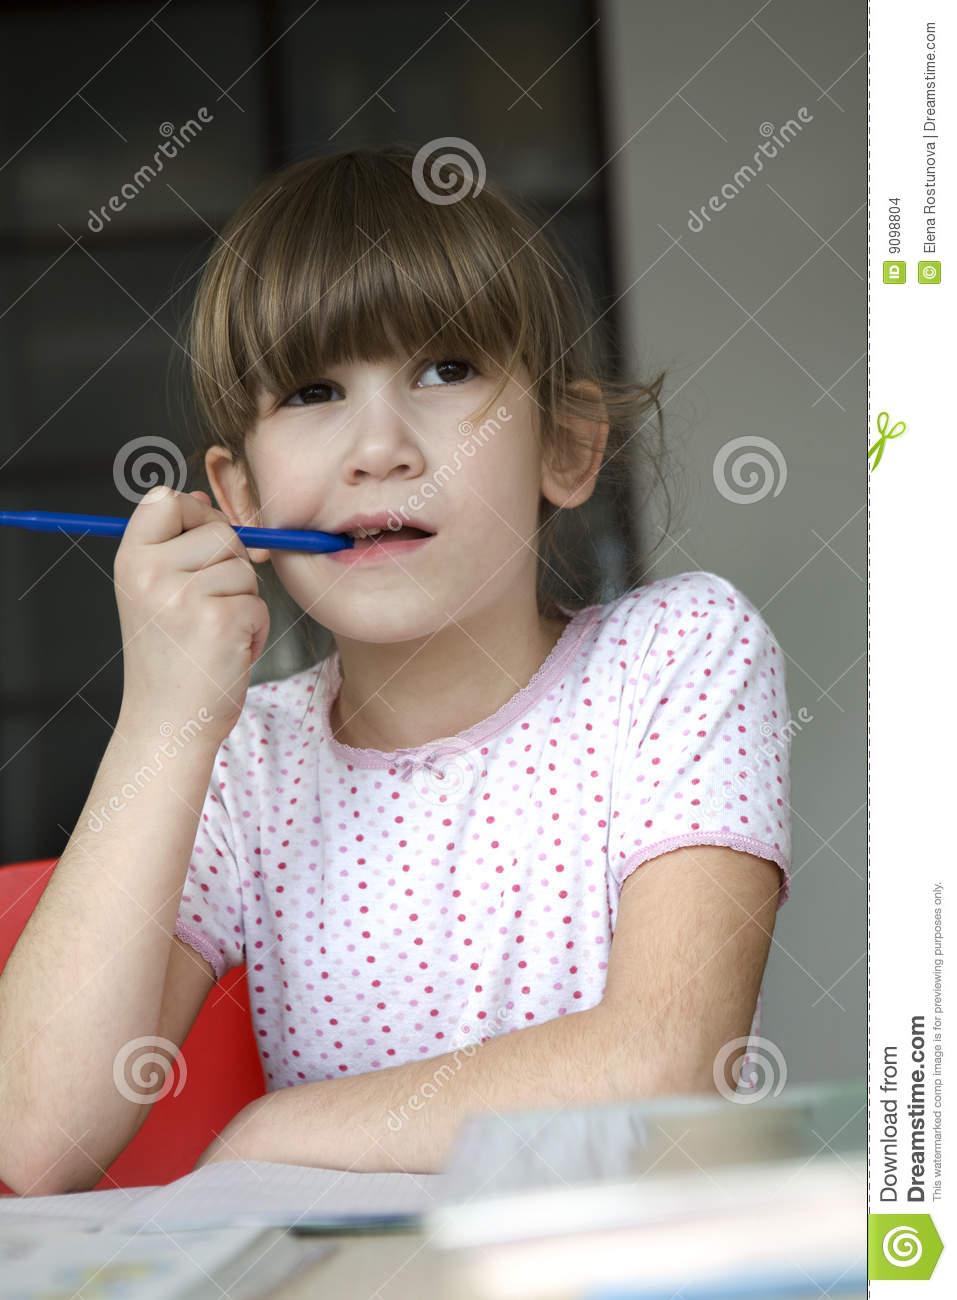 https://thumbs.dreamstime.com/z/little-cute-girl-seven-years-old-do-homework-9098804.jpg